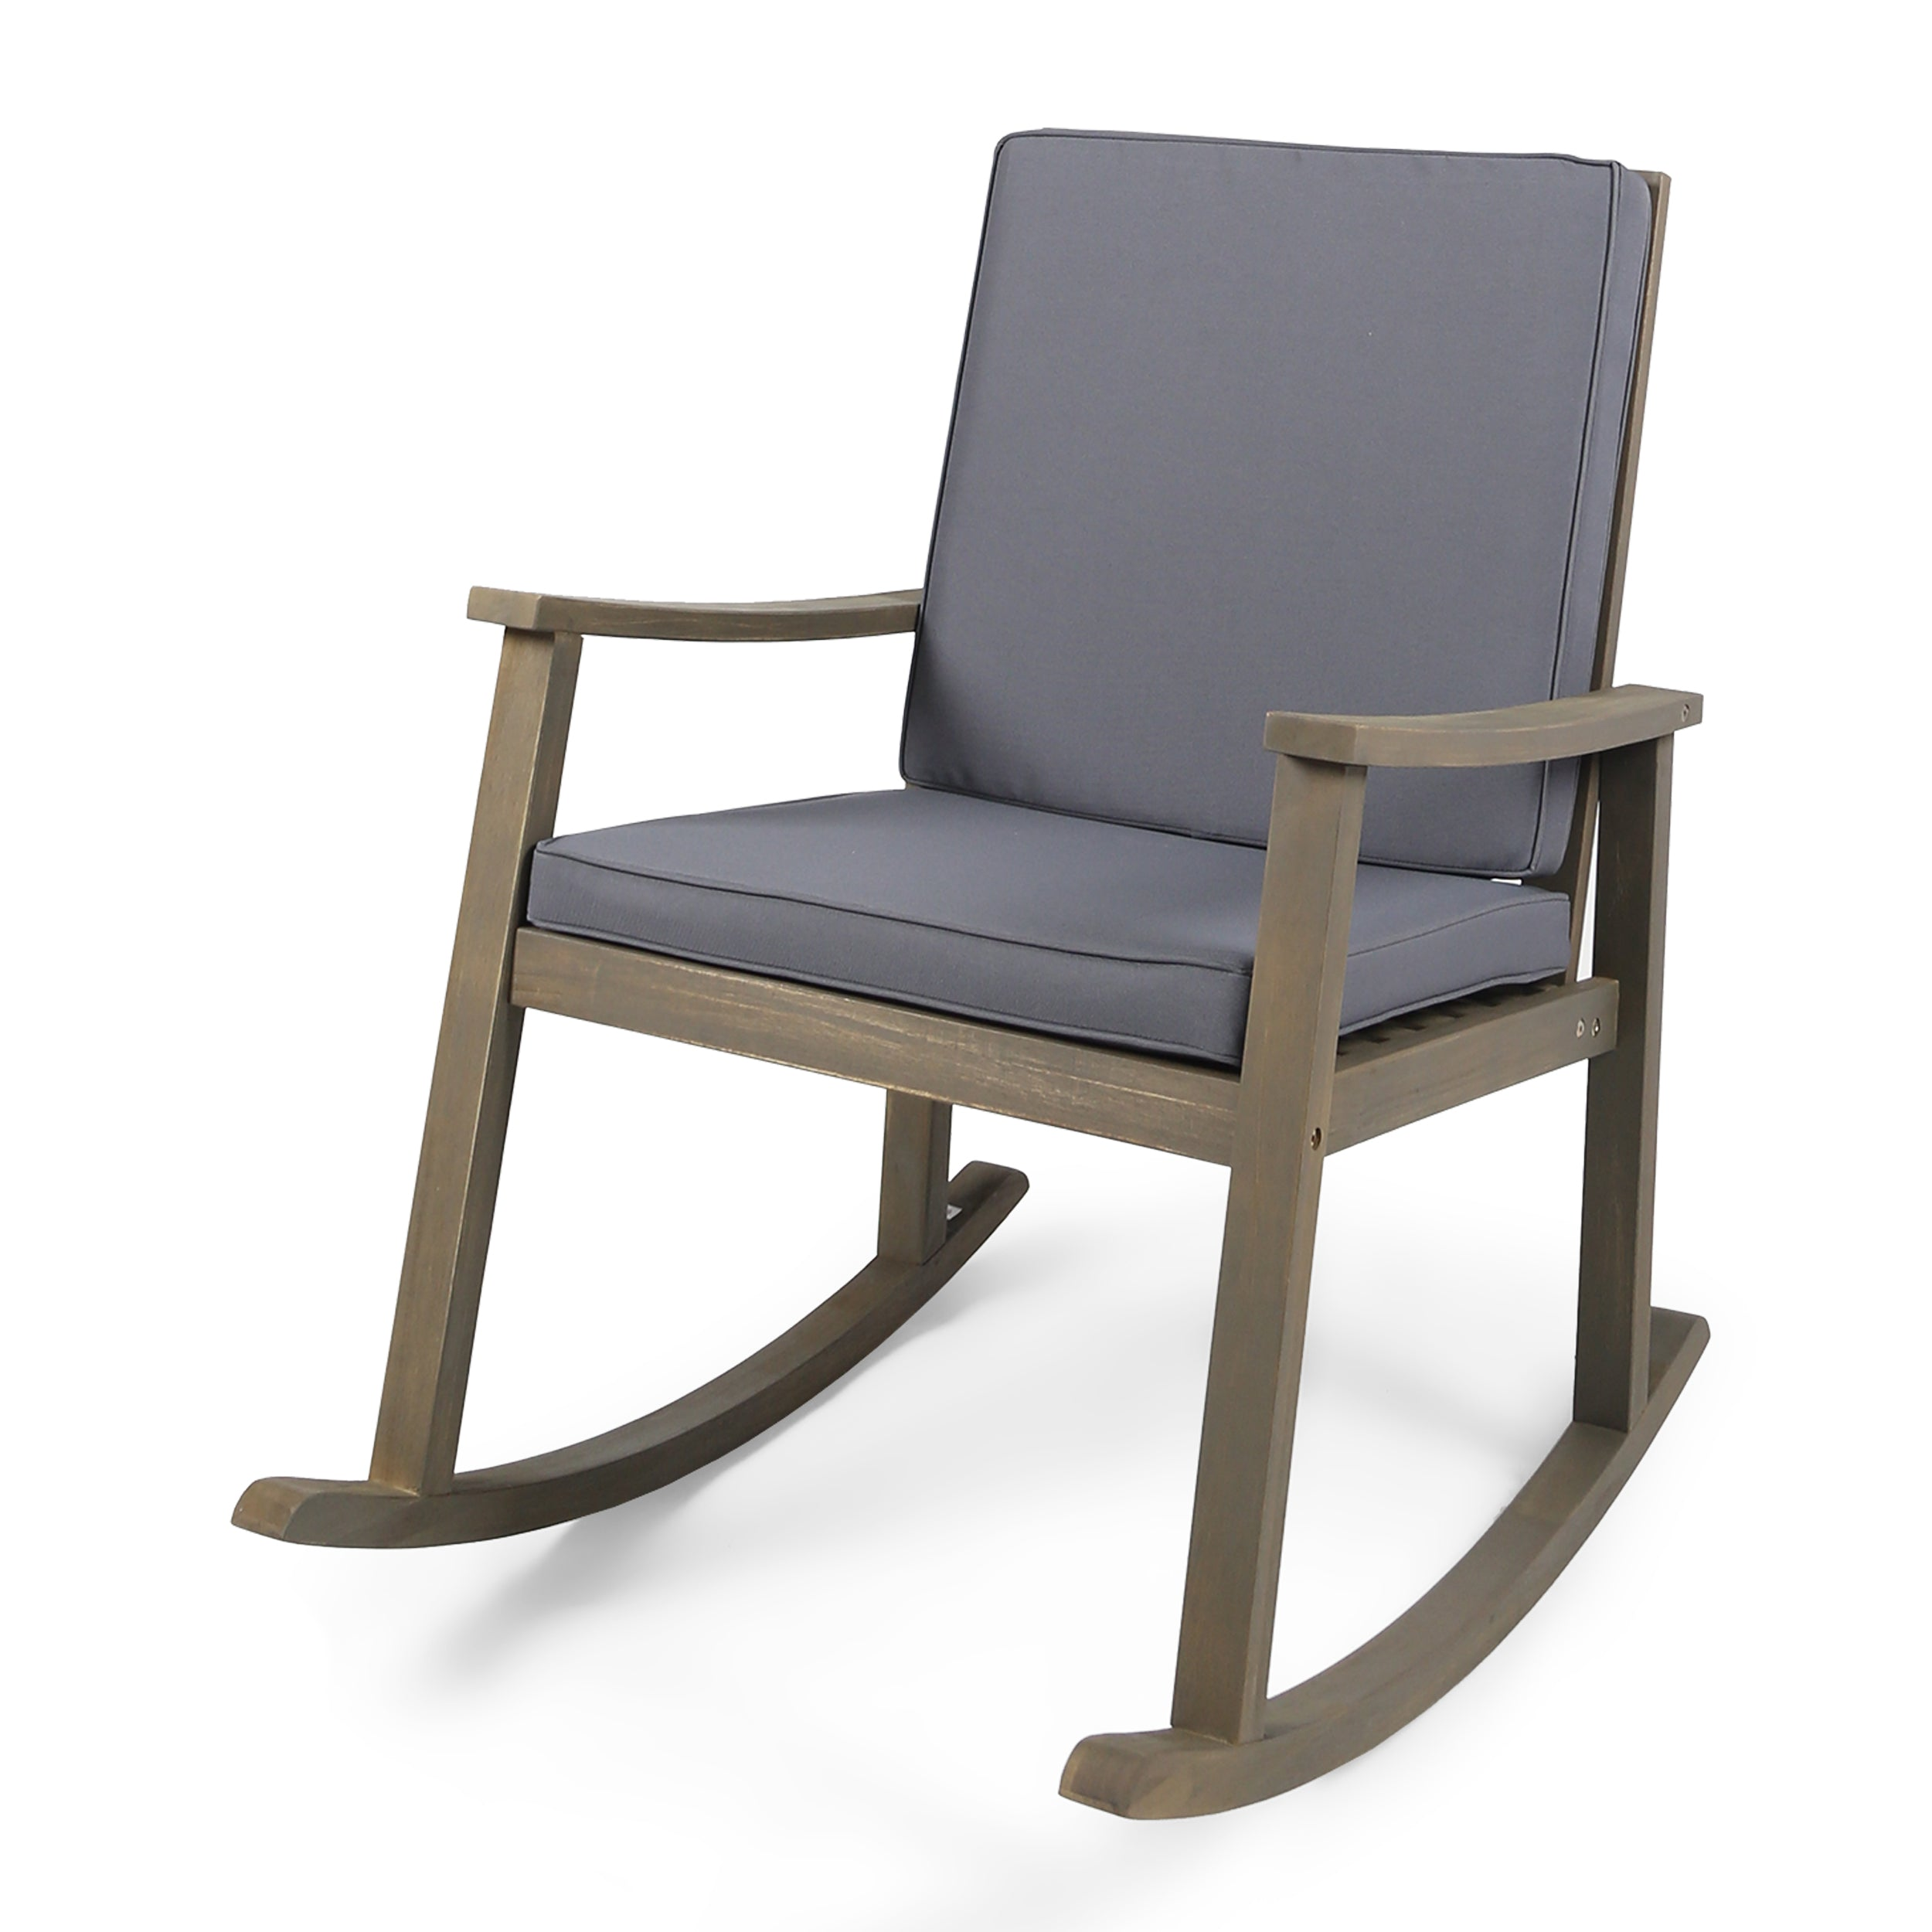 Aeney Outdoor Acacia Wood Rocking Chair Gray